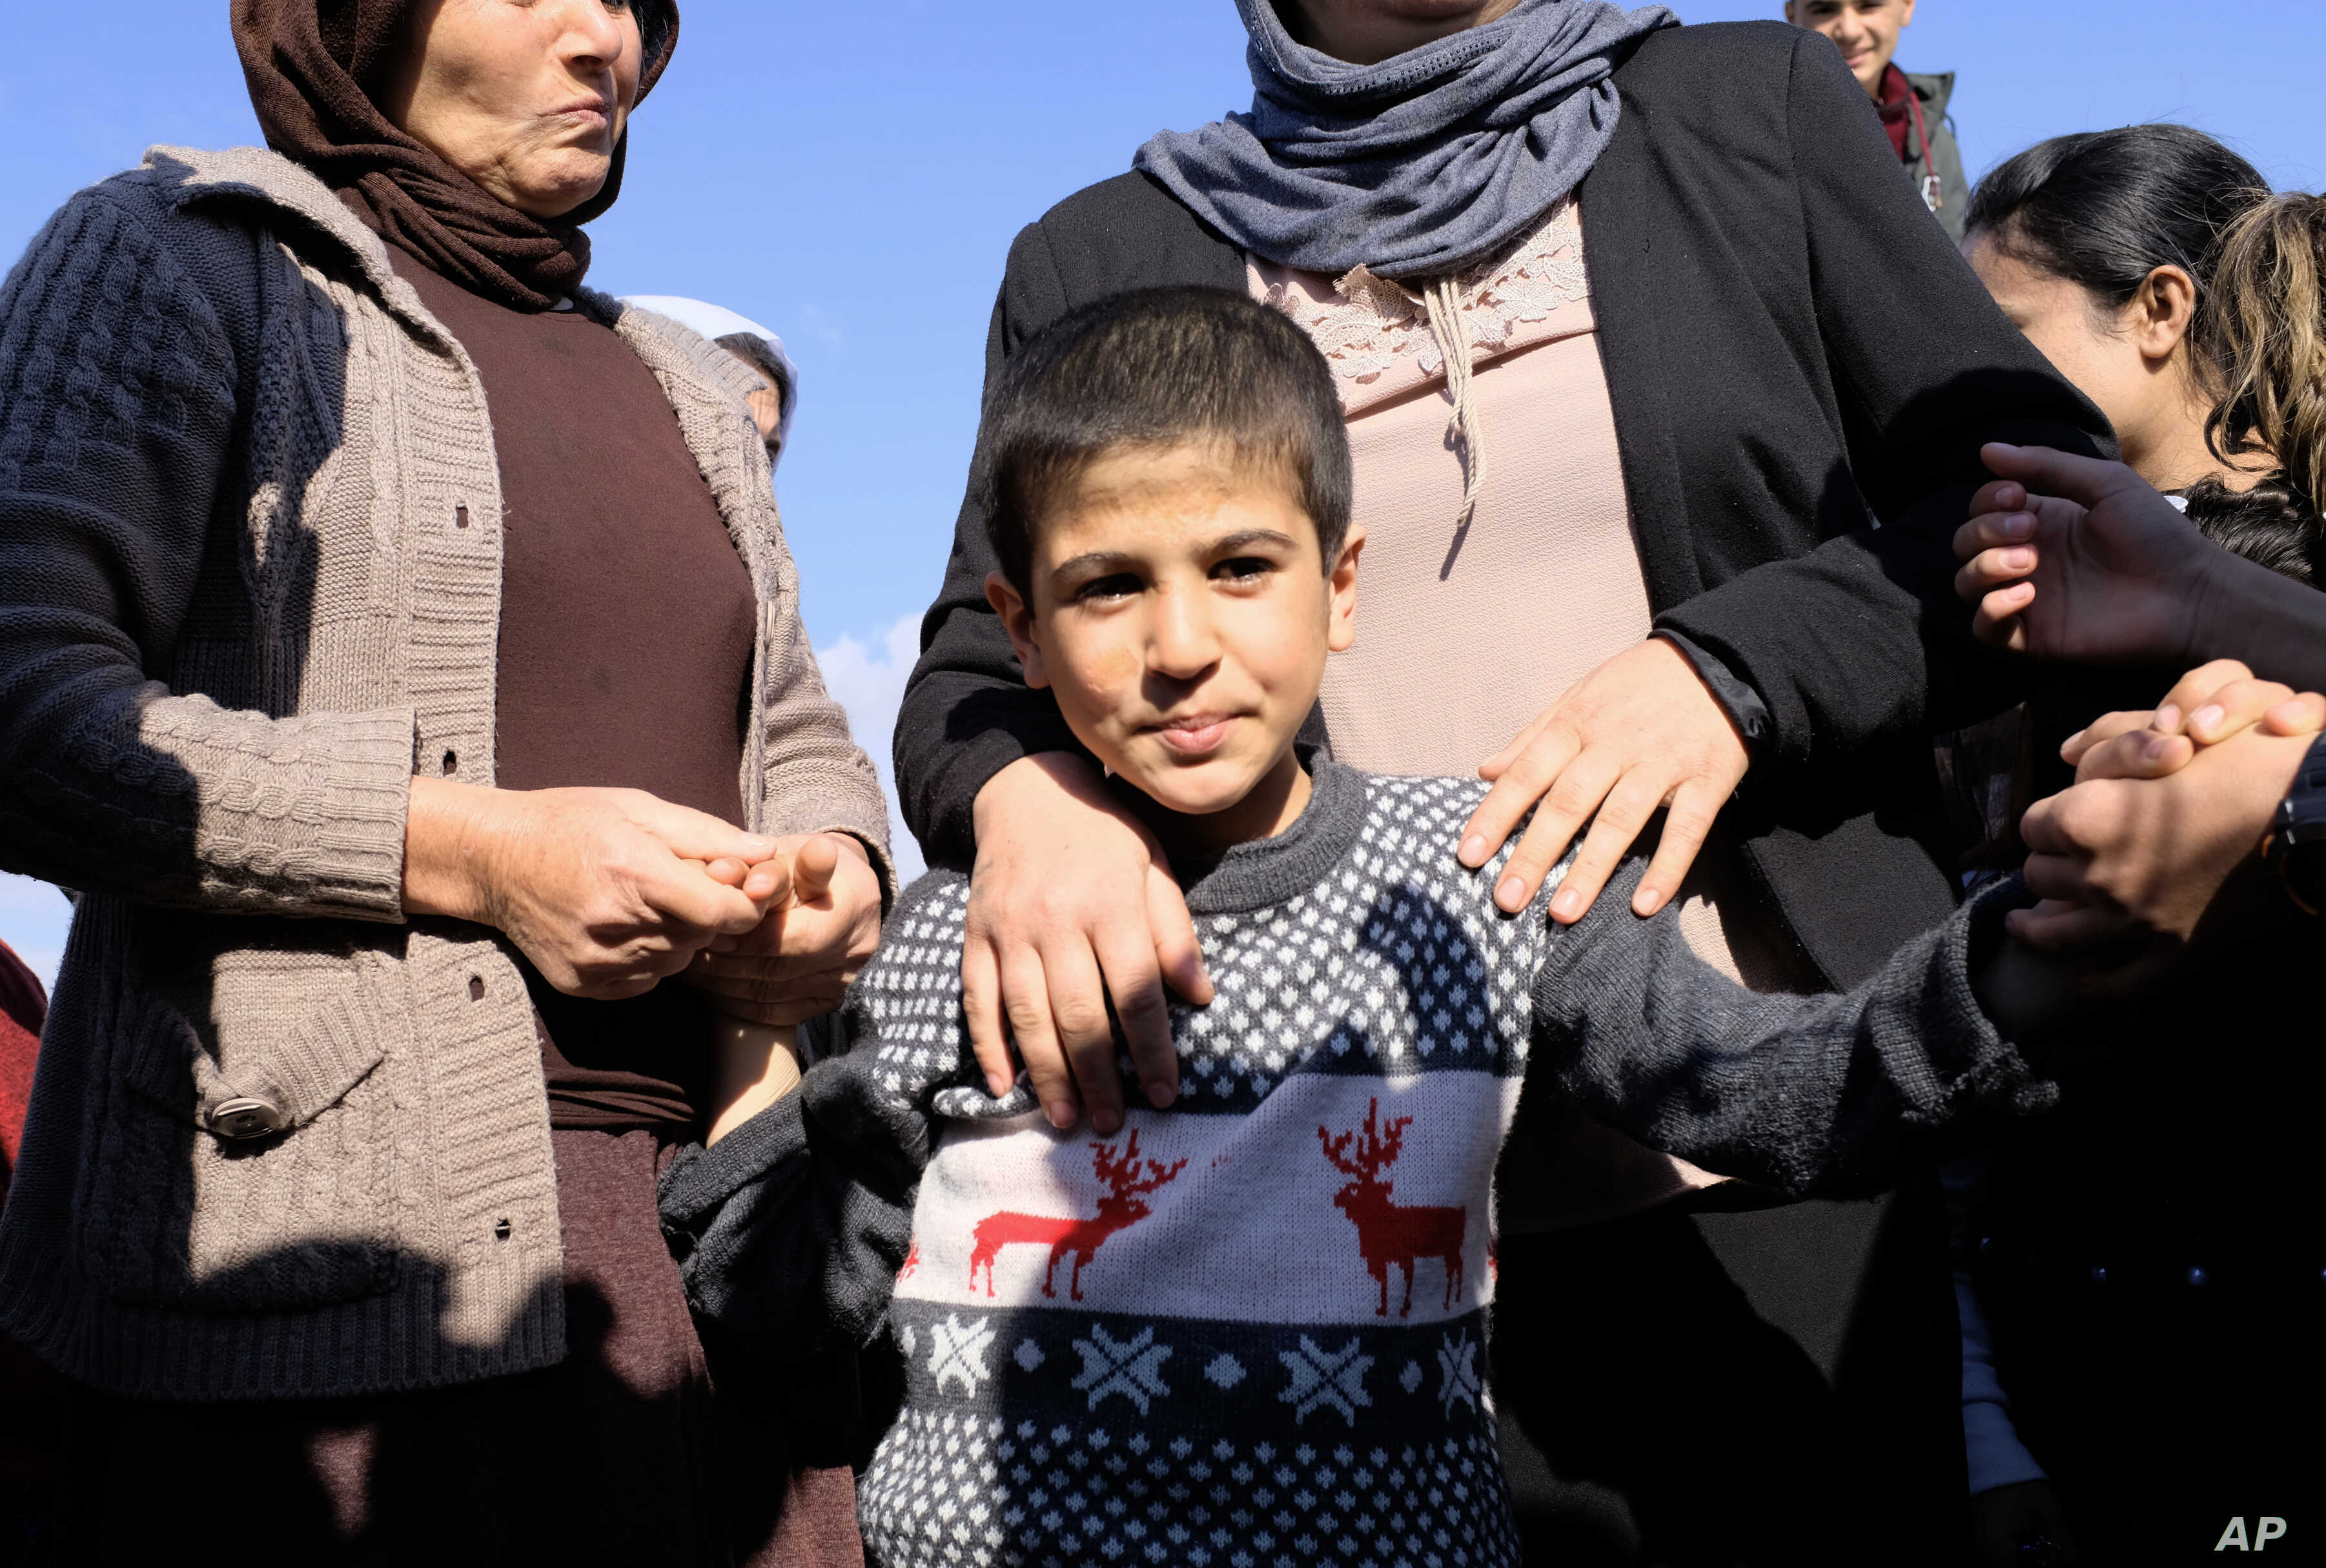 Dilbar Ali Ravu, 10, is reunited with his family in Iraq after five years of captivity with the Islamic State group, March 2, 2019.